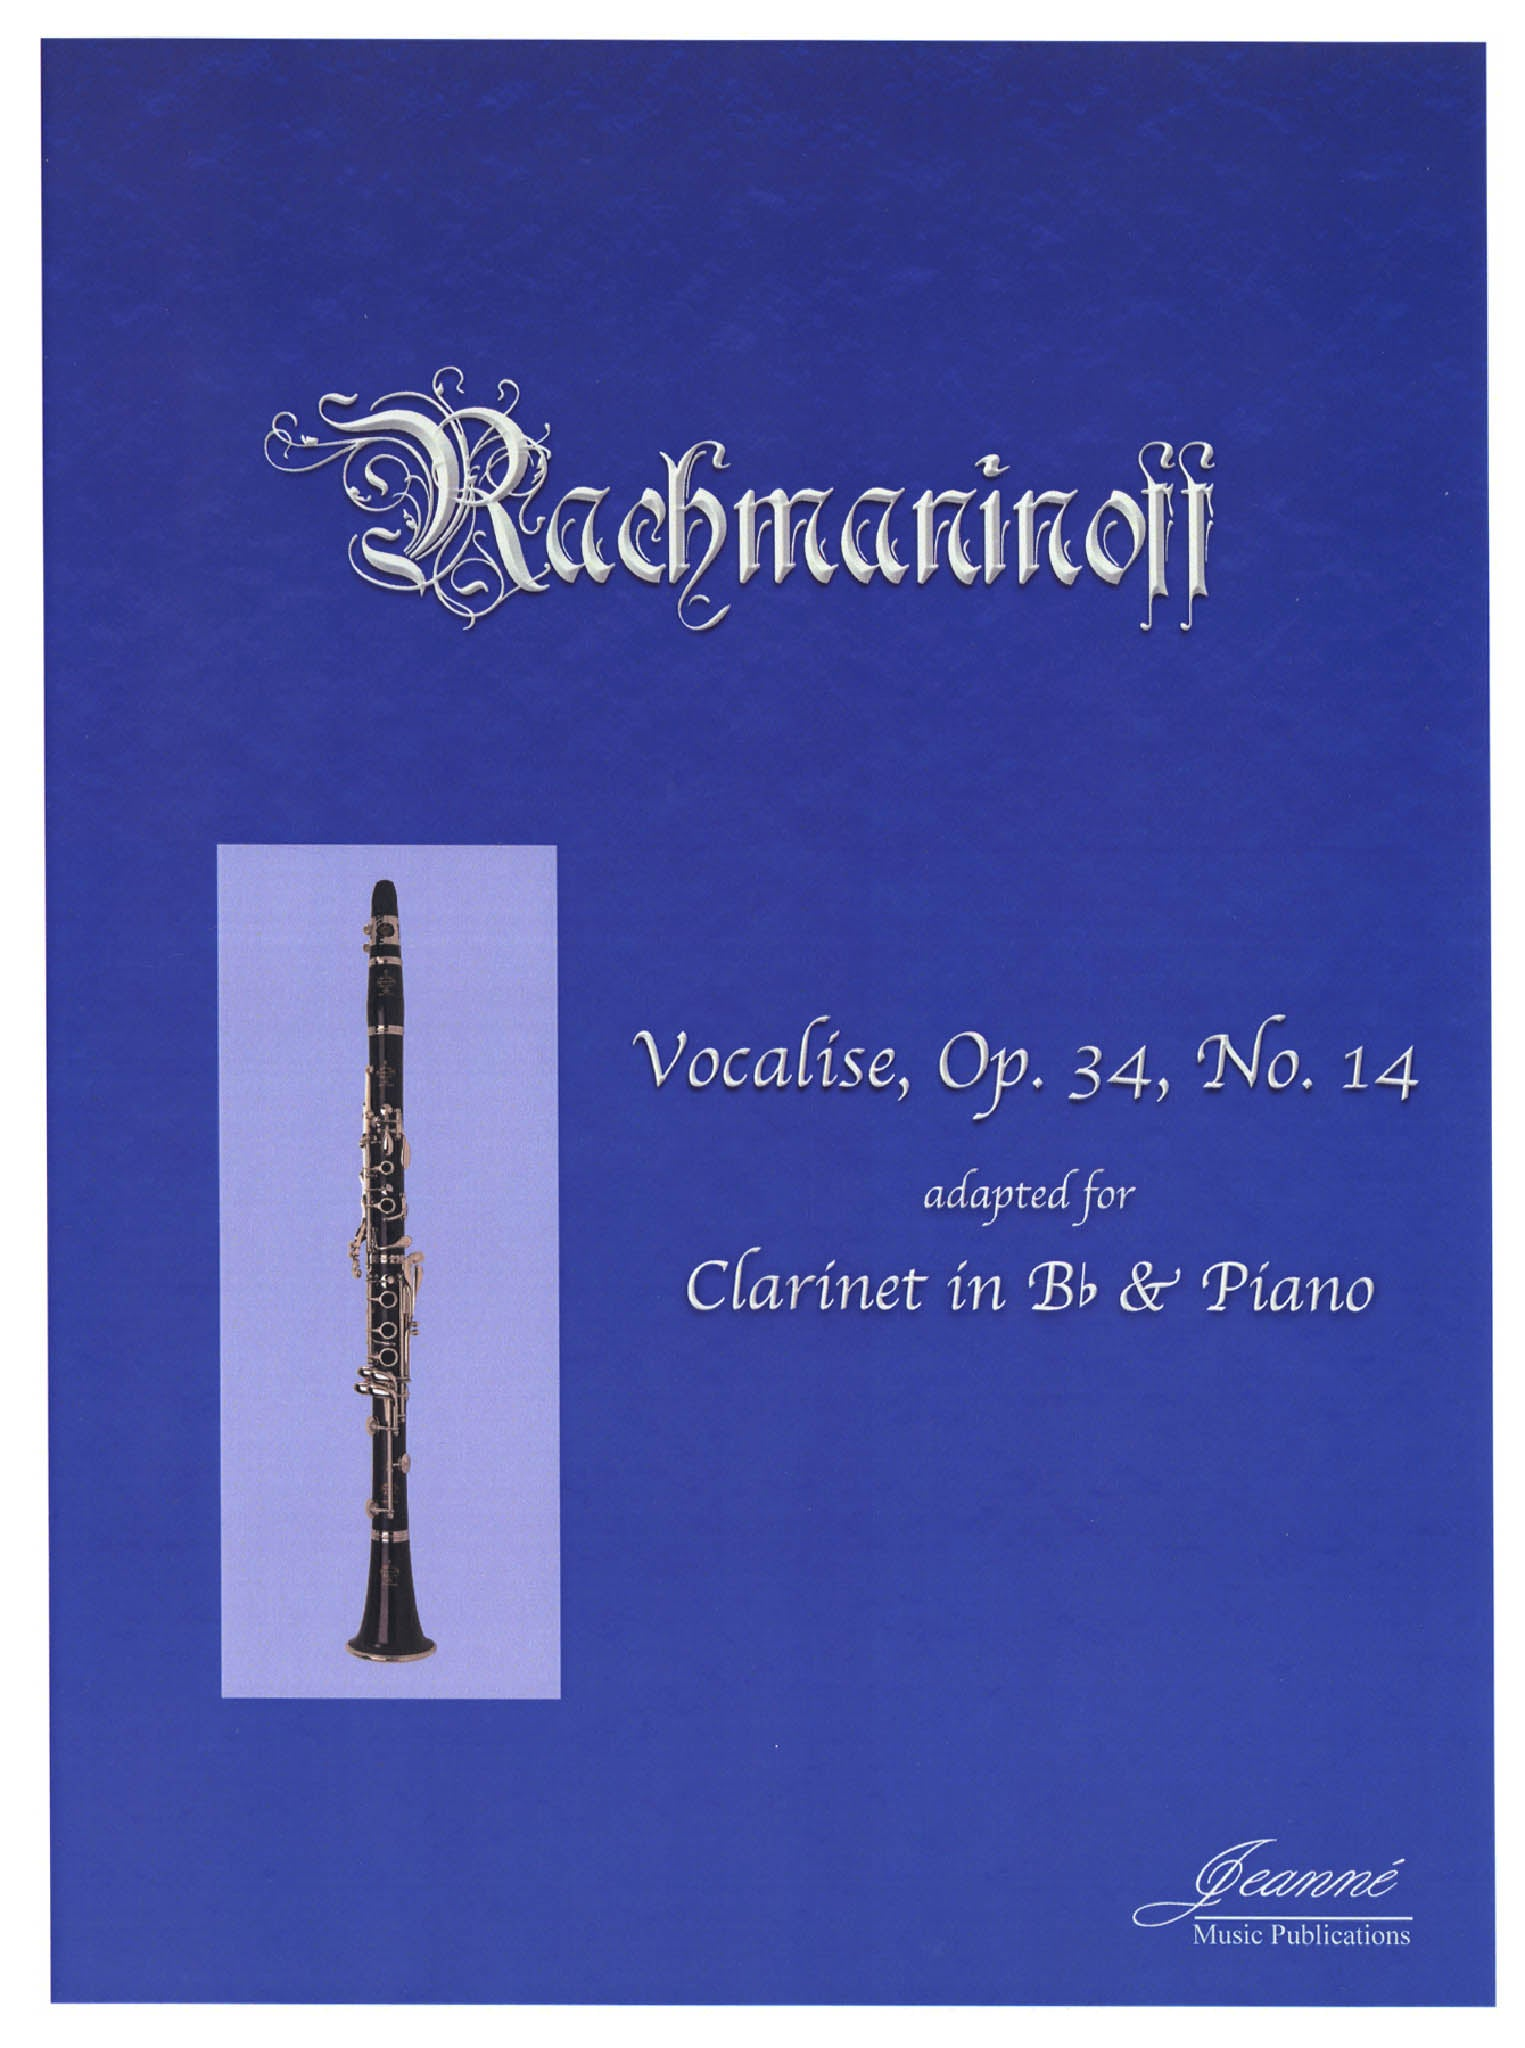 Rachmaninoff Vocalise Op. 34 No. 14 Cover